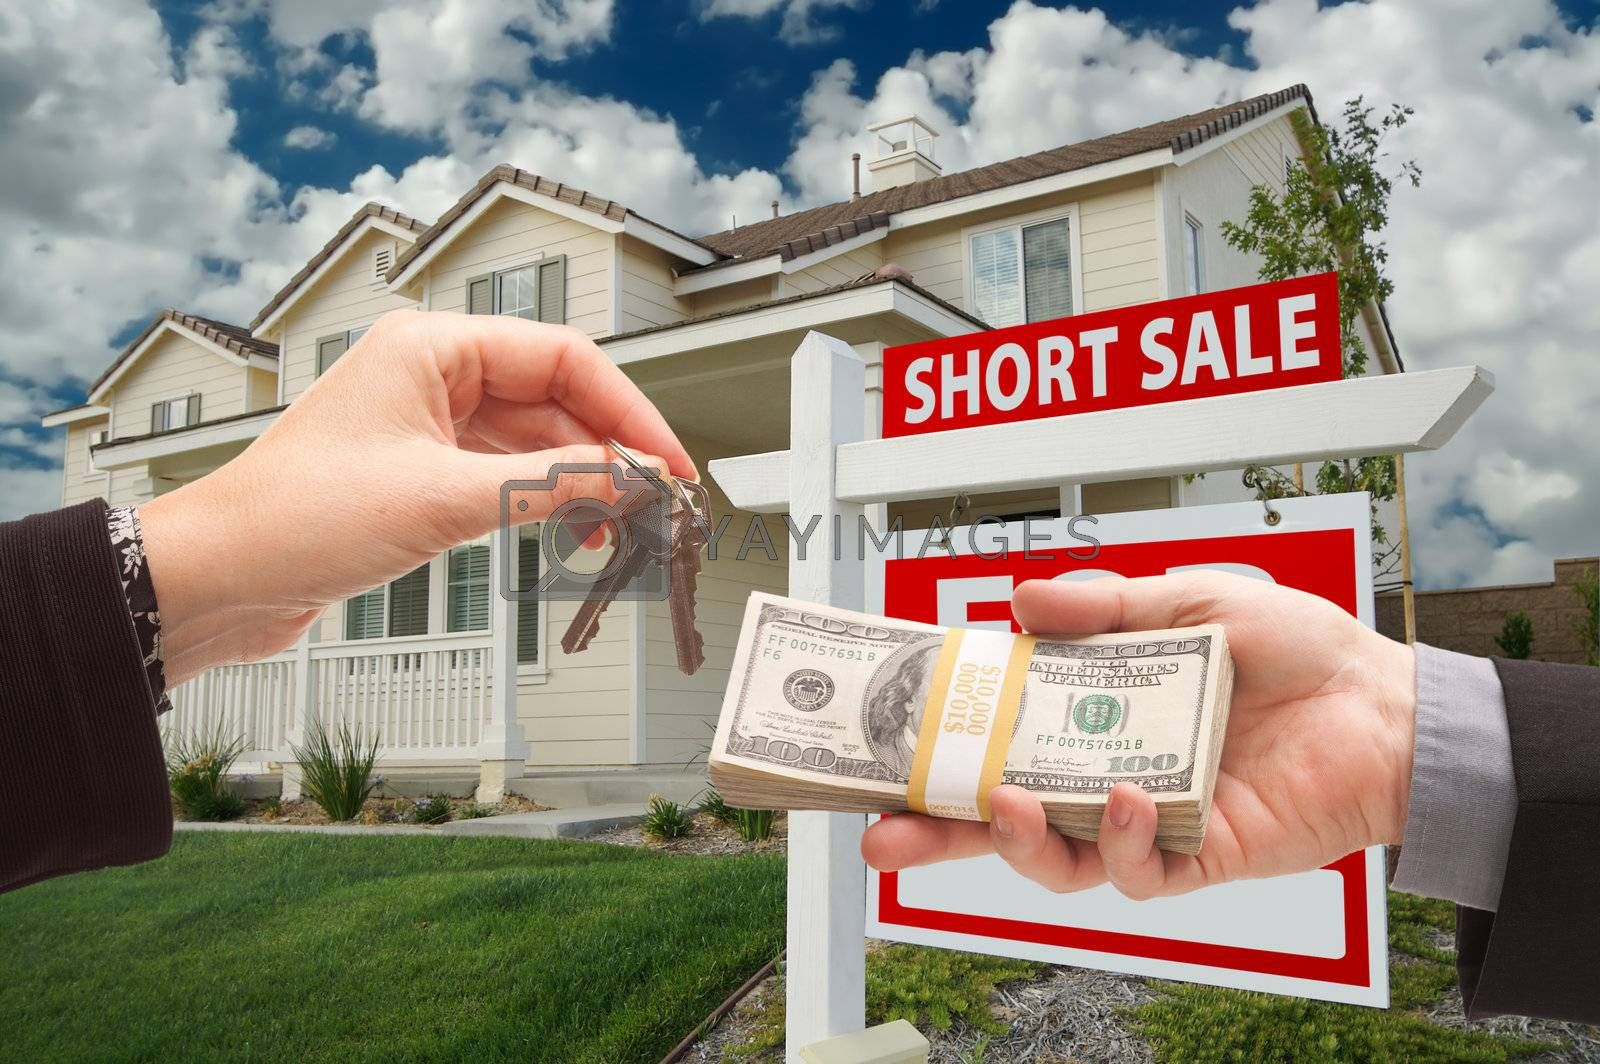 Handing Over Cash For House Keys and Short Sale Sign by Feverpitched